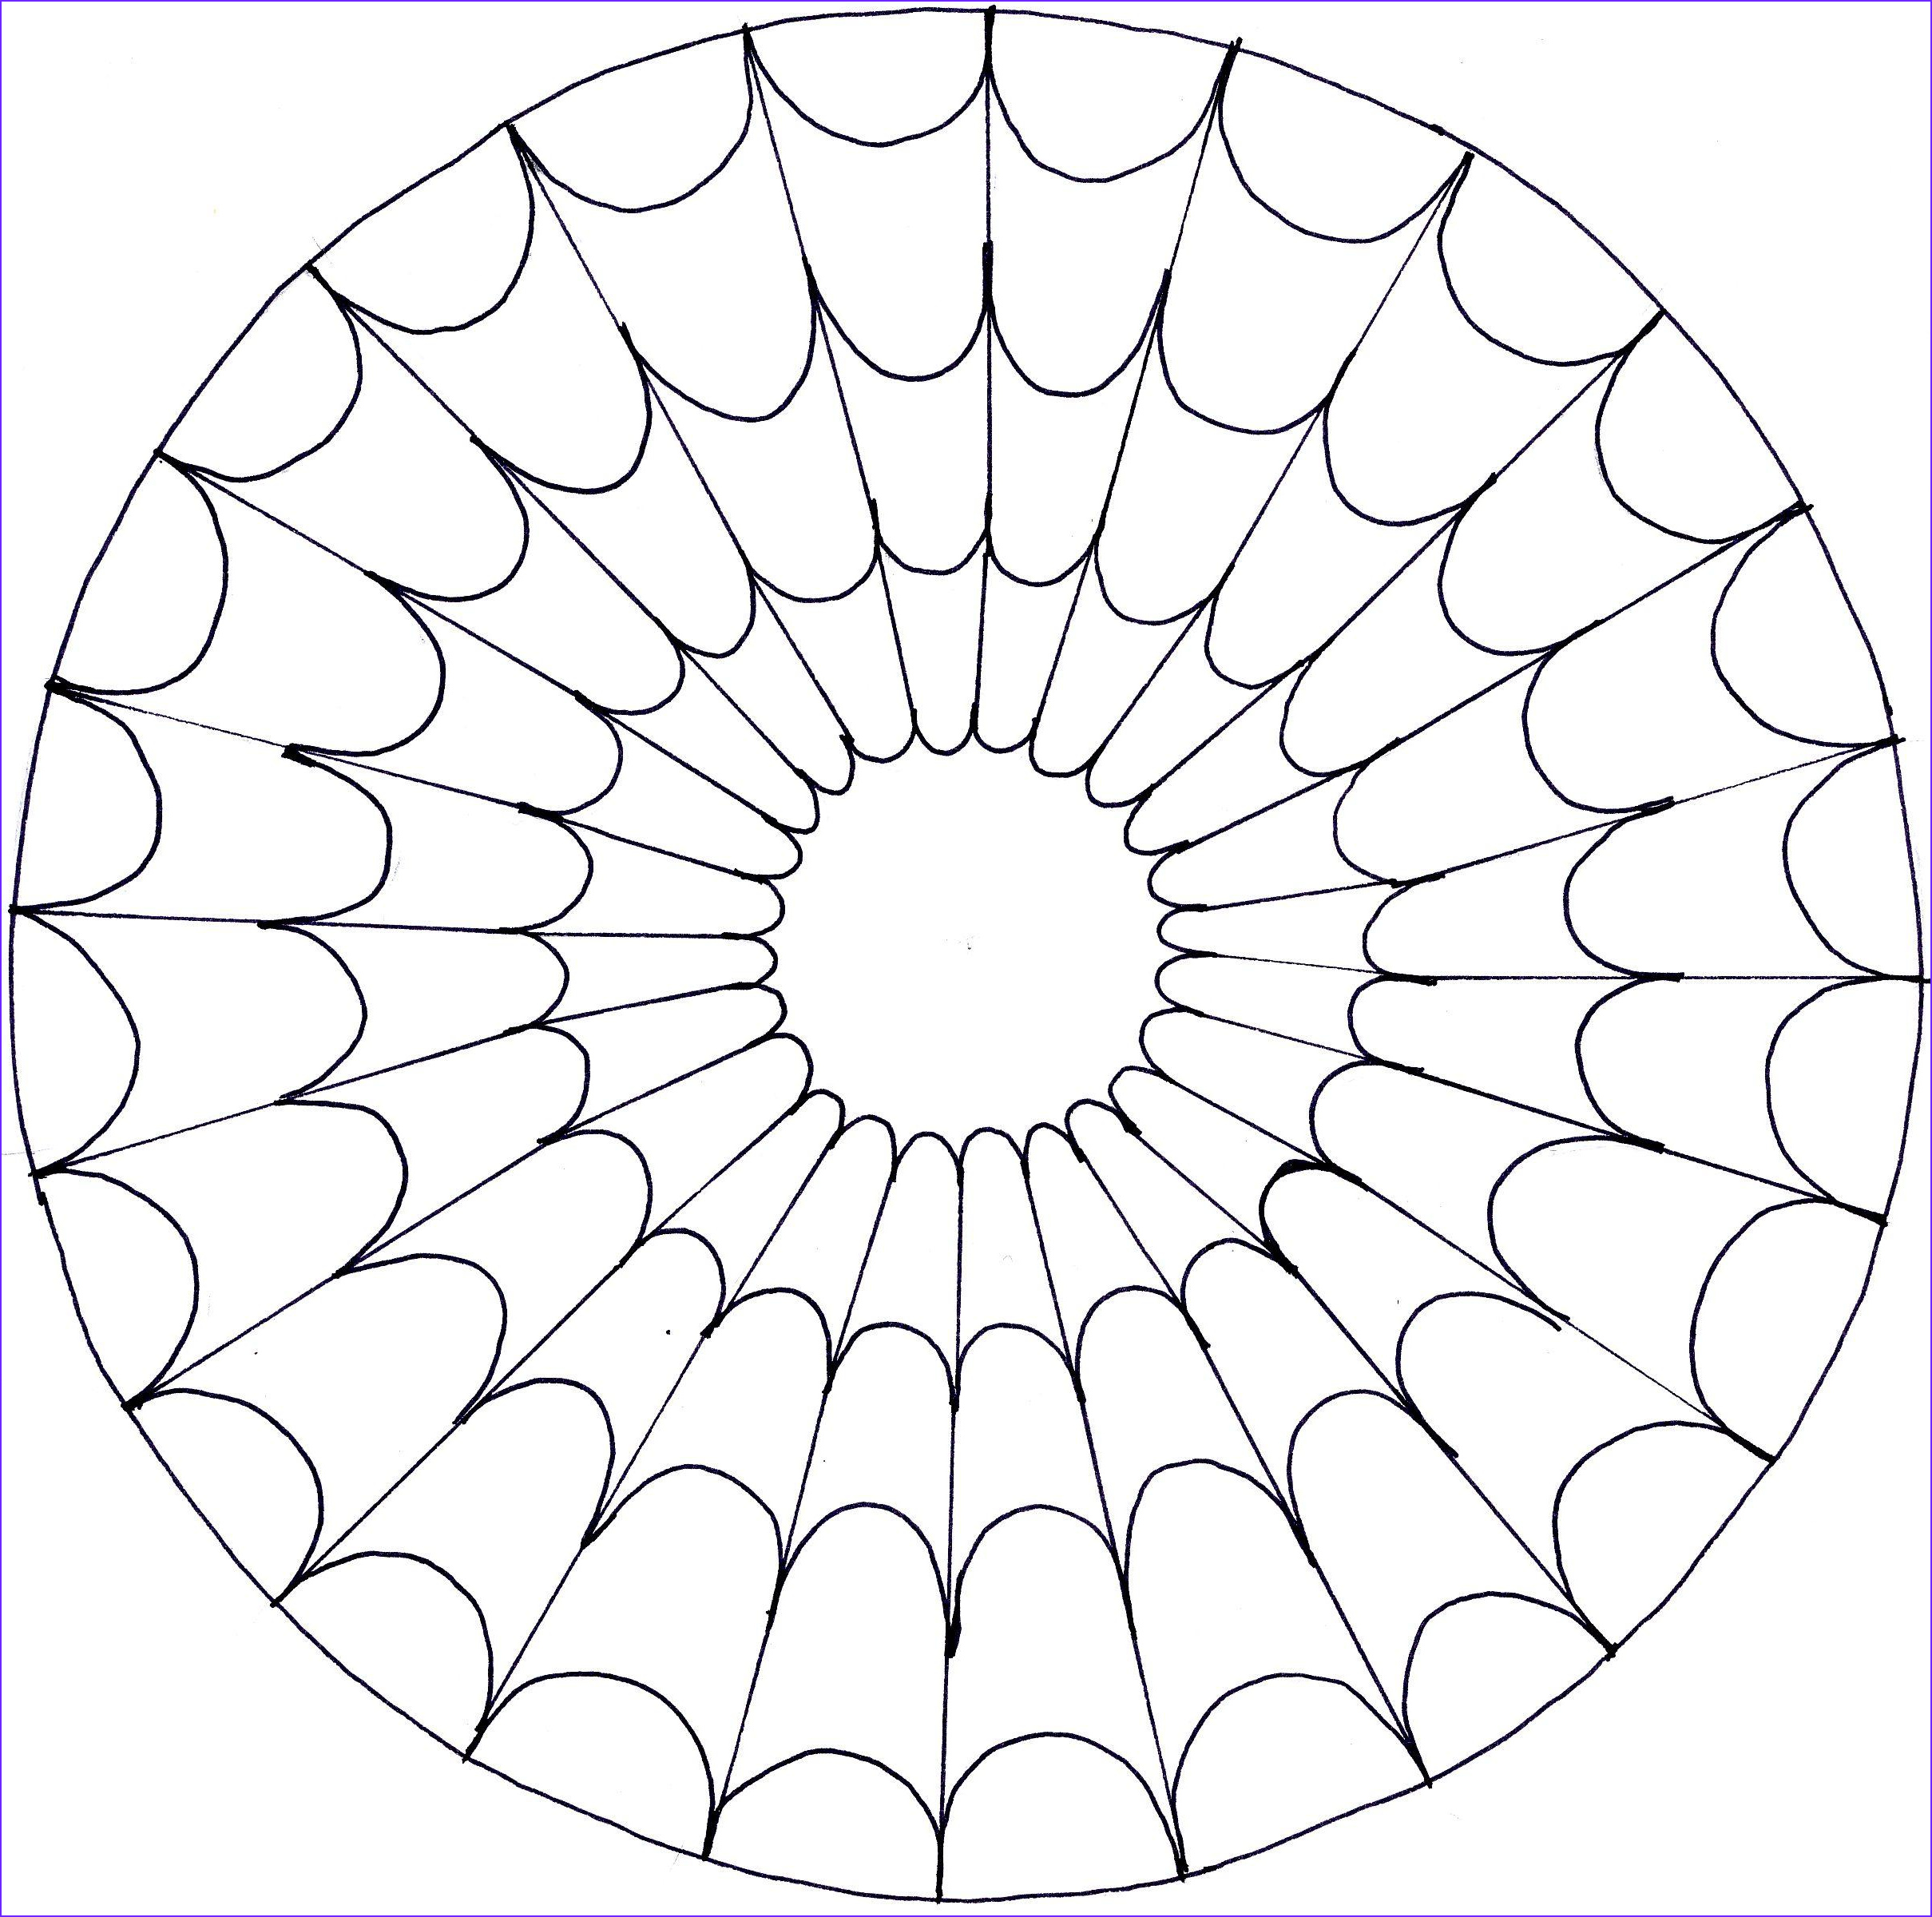 Simple Mandala Coloring Pages Unique Image Free Printable Mandalas for Kids Best Coloring Pages for